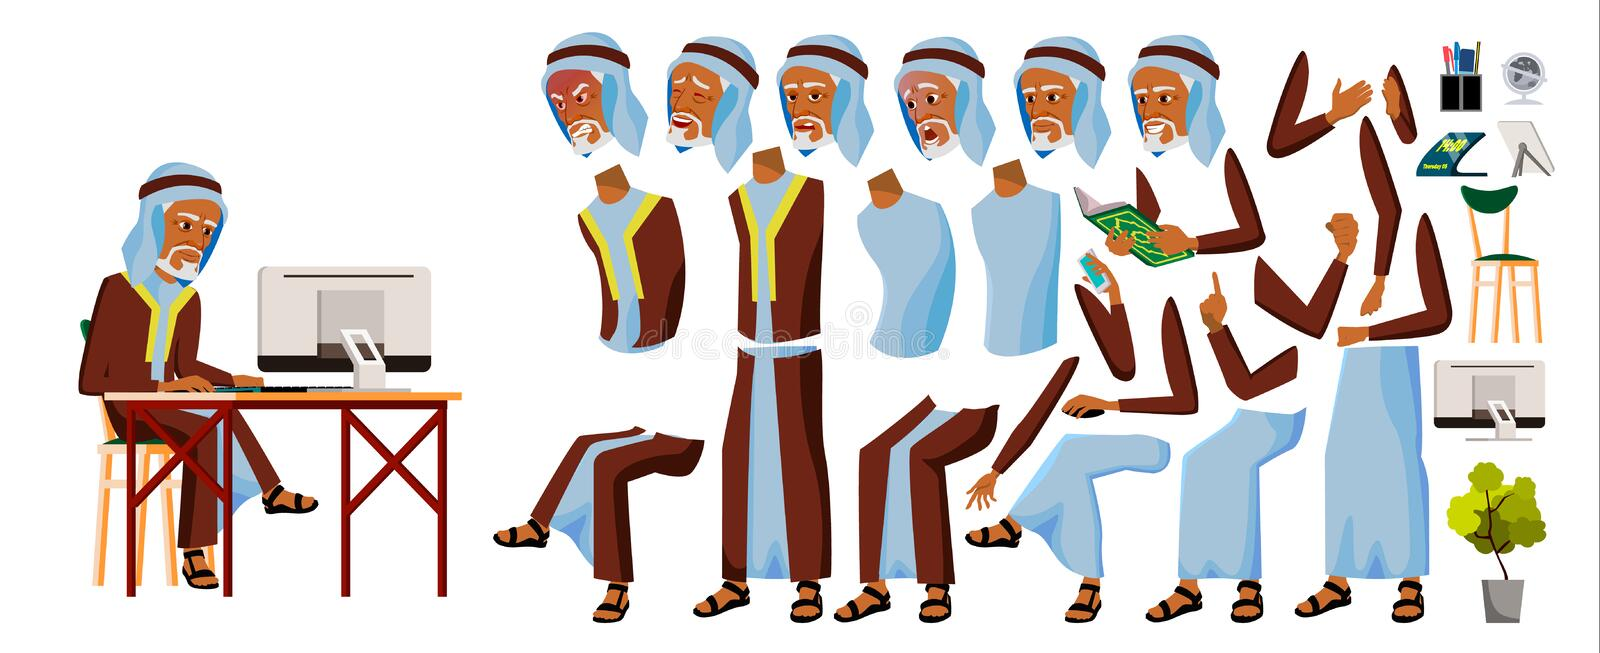 Arab Old Man Office Worker Vector. Arab, Muslim. Business Animation Set. Facial Emotions, Gestures. Businessman Person vector illustration